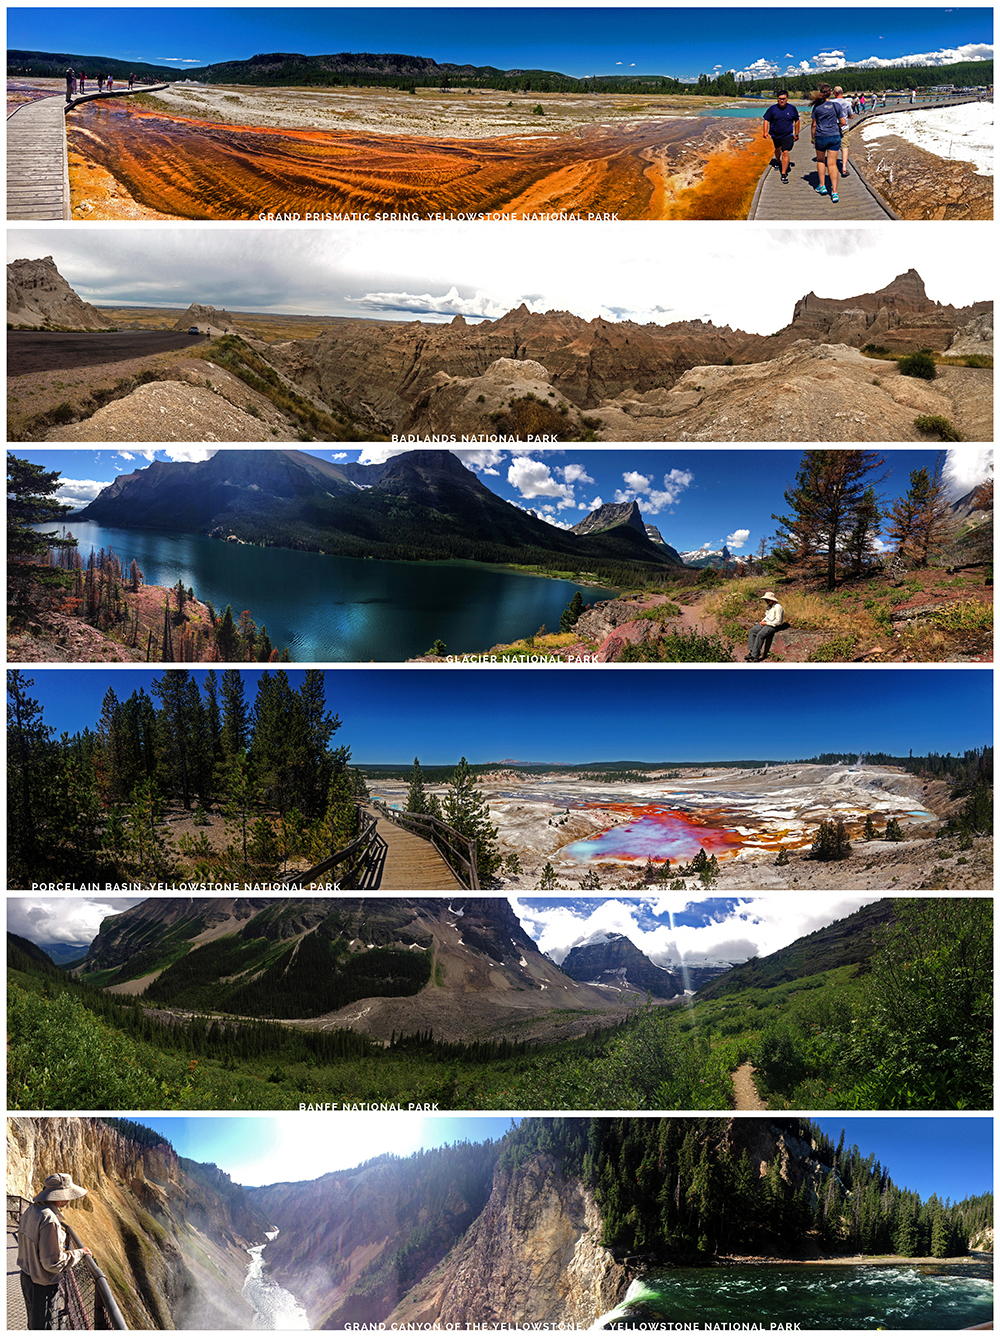 American Southwest 2016 Panorama Poster_04_02